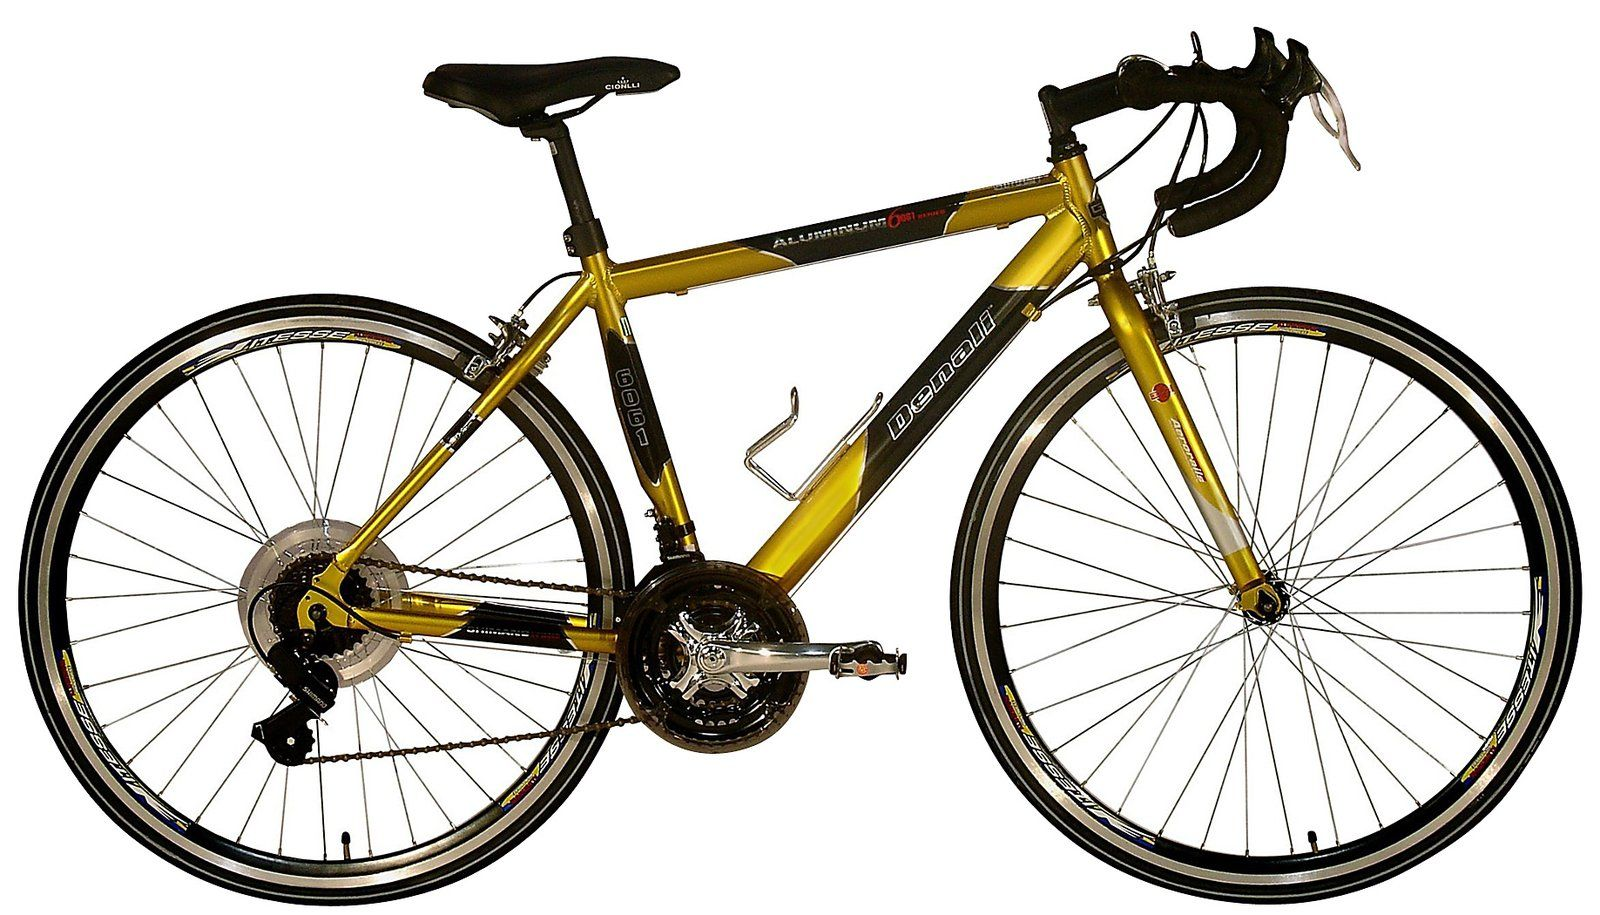 Gmc Denali Road Bike Review Gmc Denali Road Bike Bike Reviews